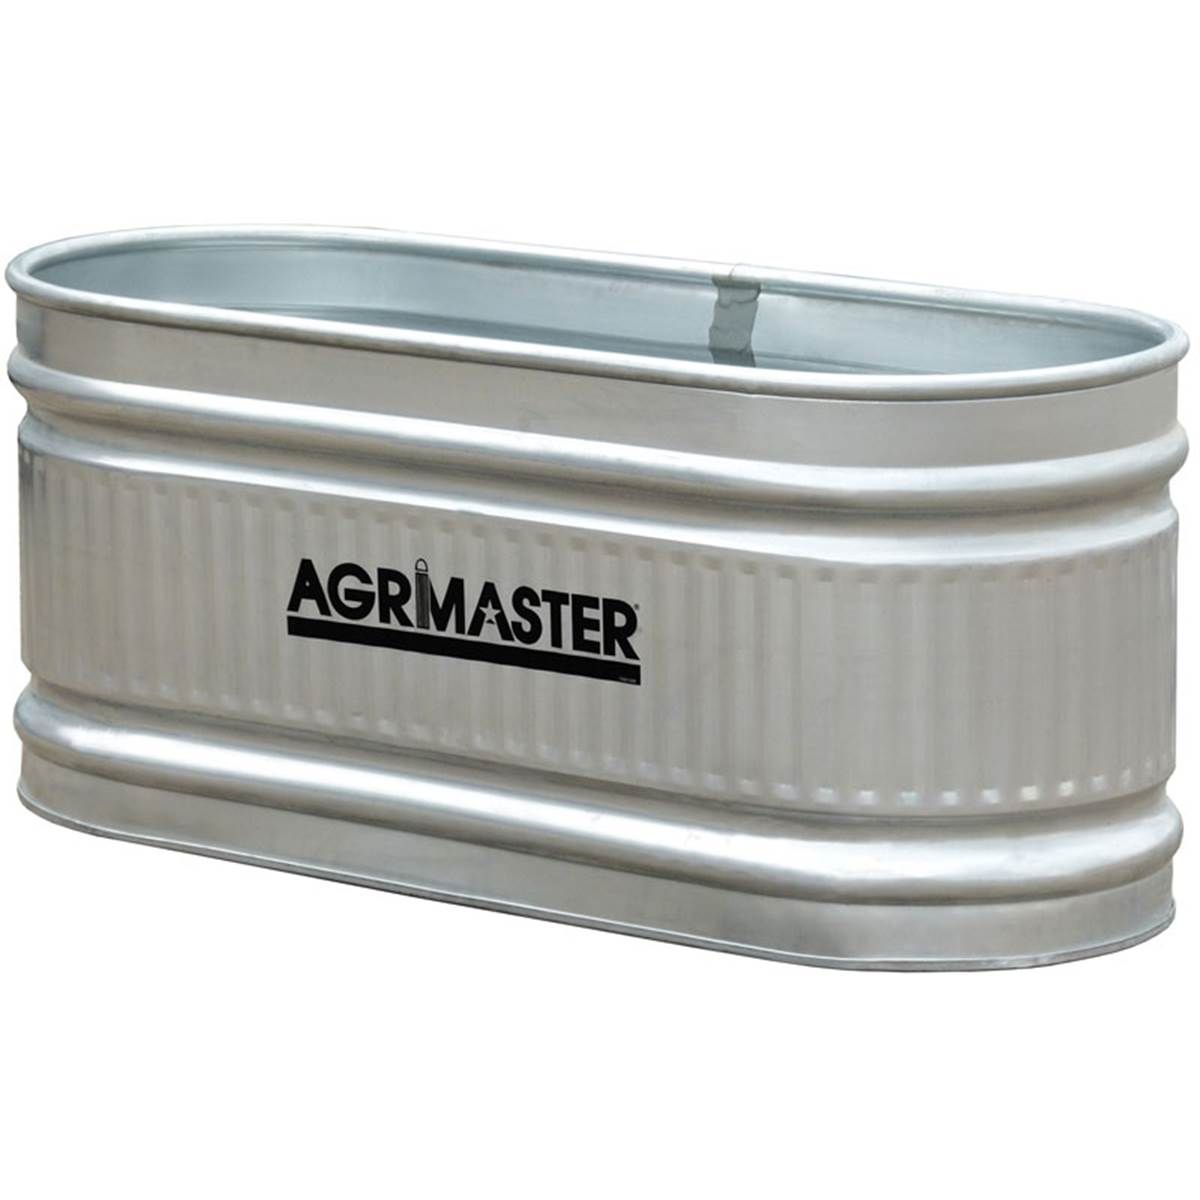 Agrimaster galvanized stock tank by behlen country